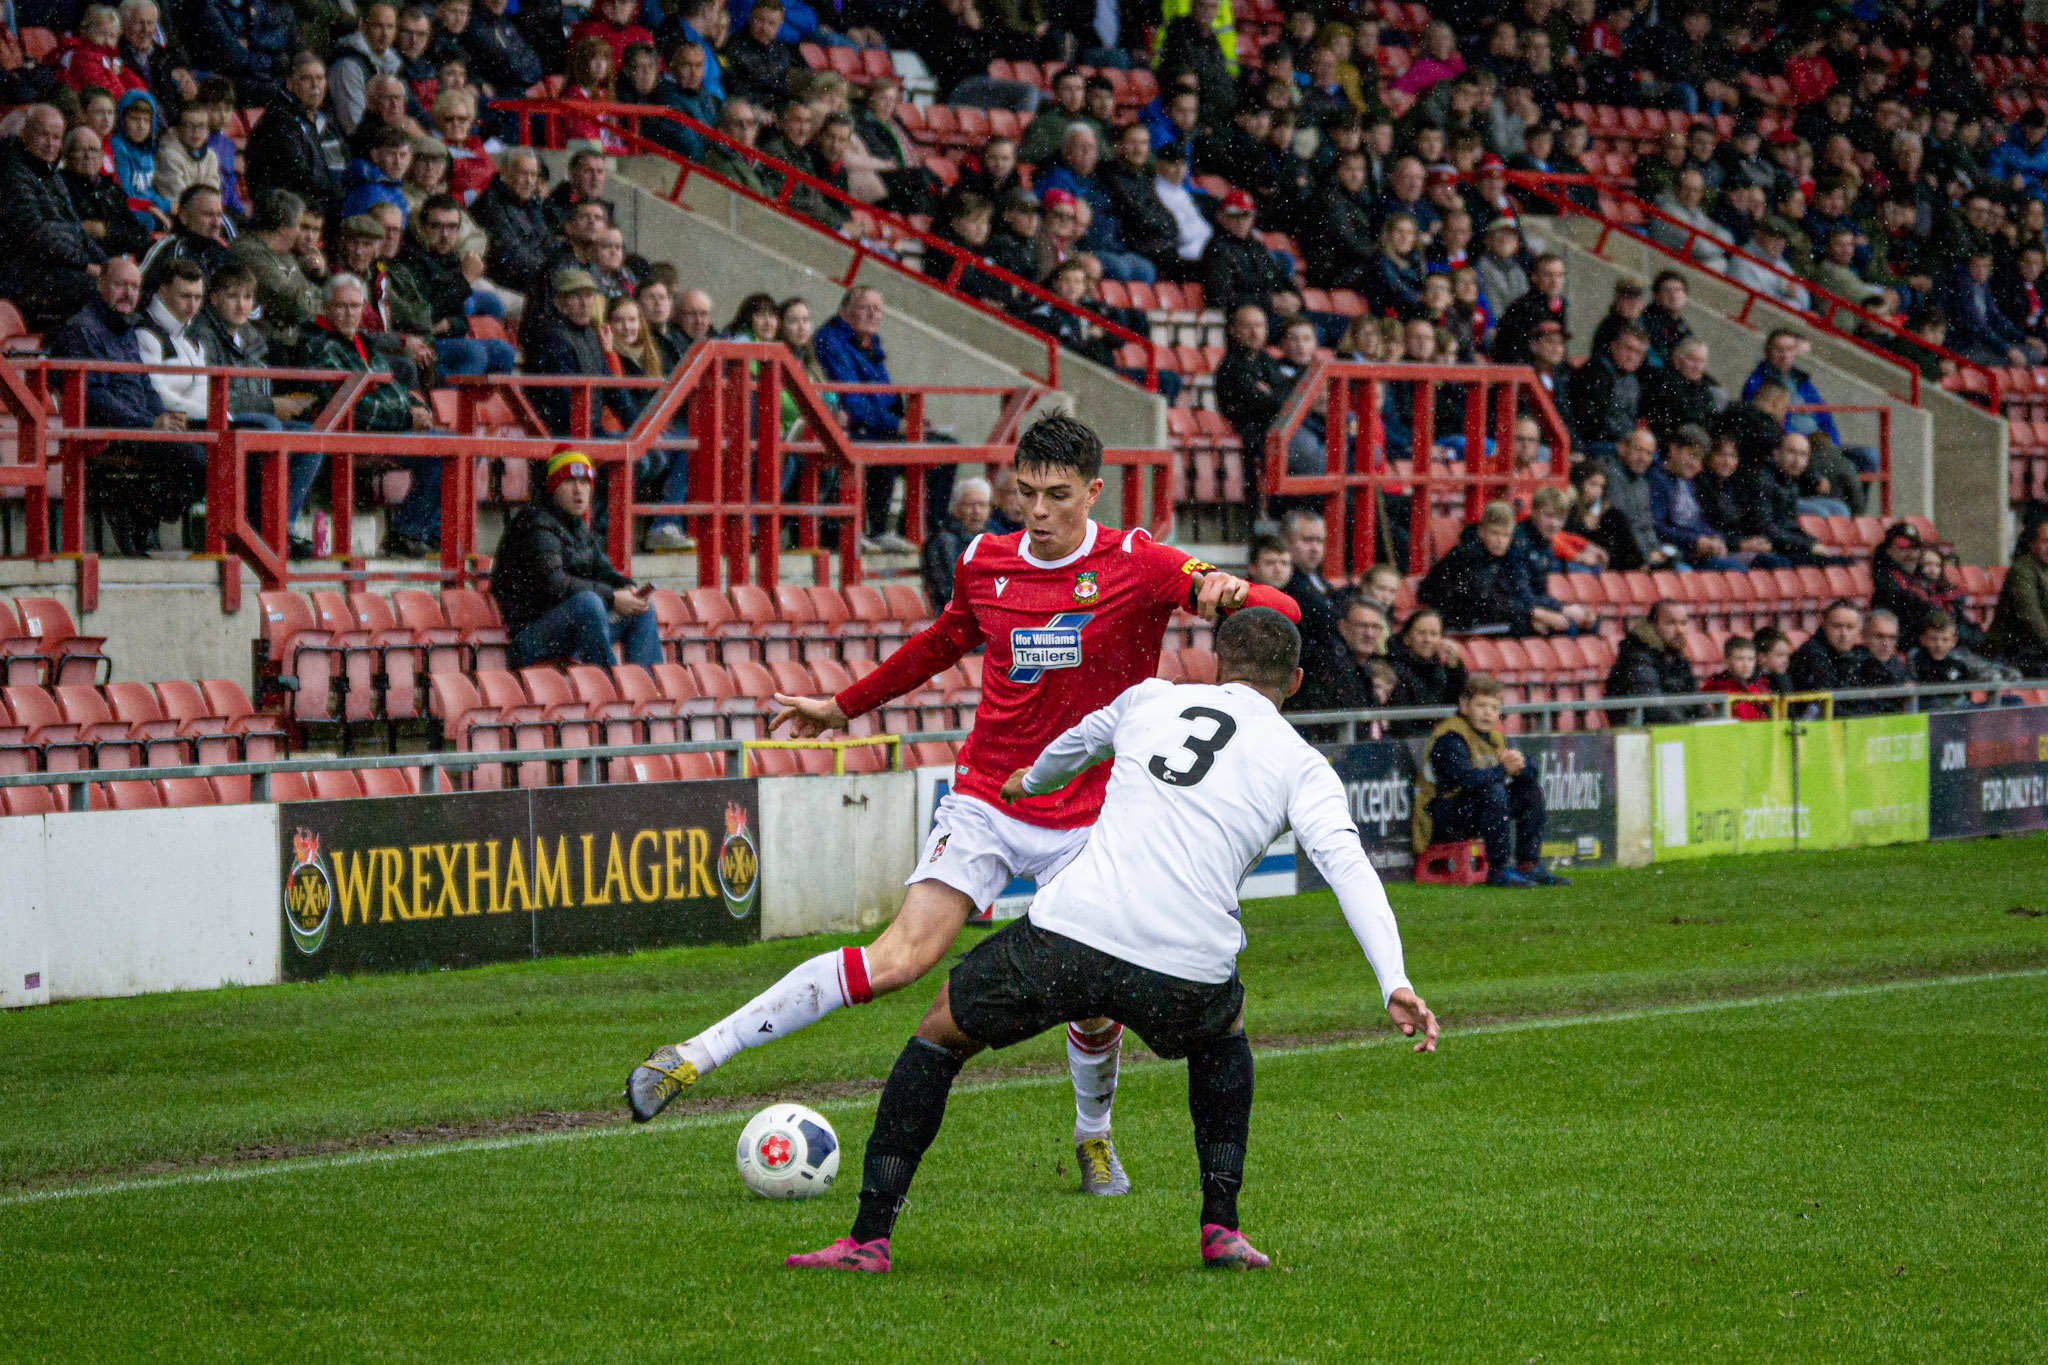 Wrexham AFC away at either Solihull Moors or Rangers Colts in Scottish Challenge Cup quarter-finals